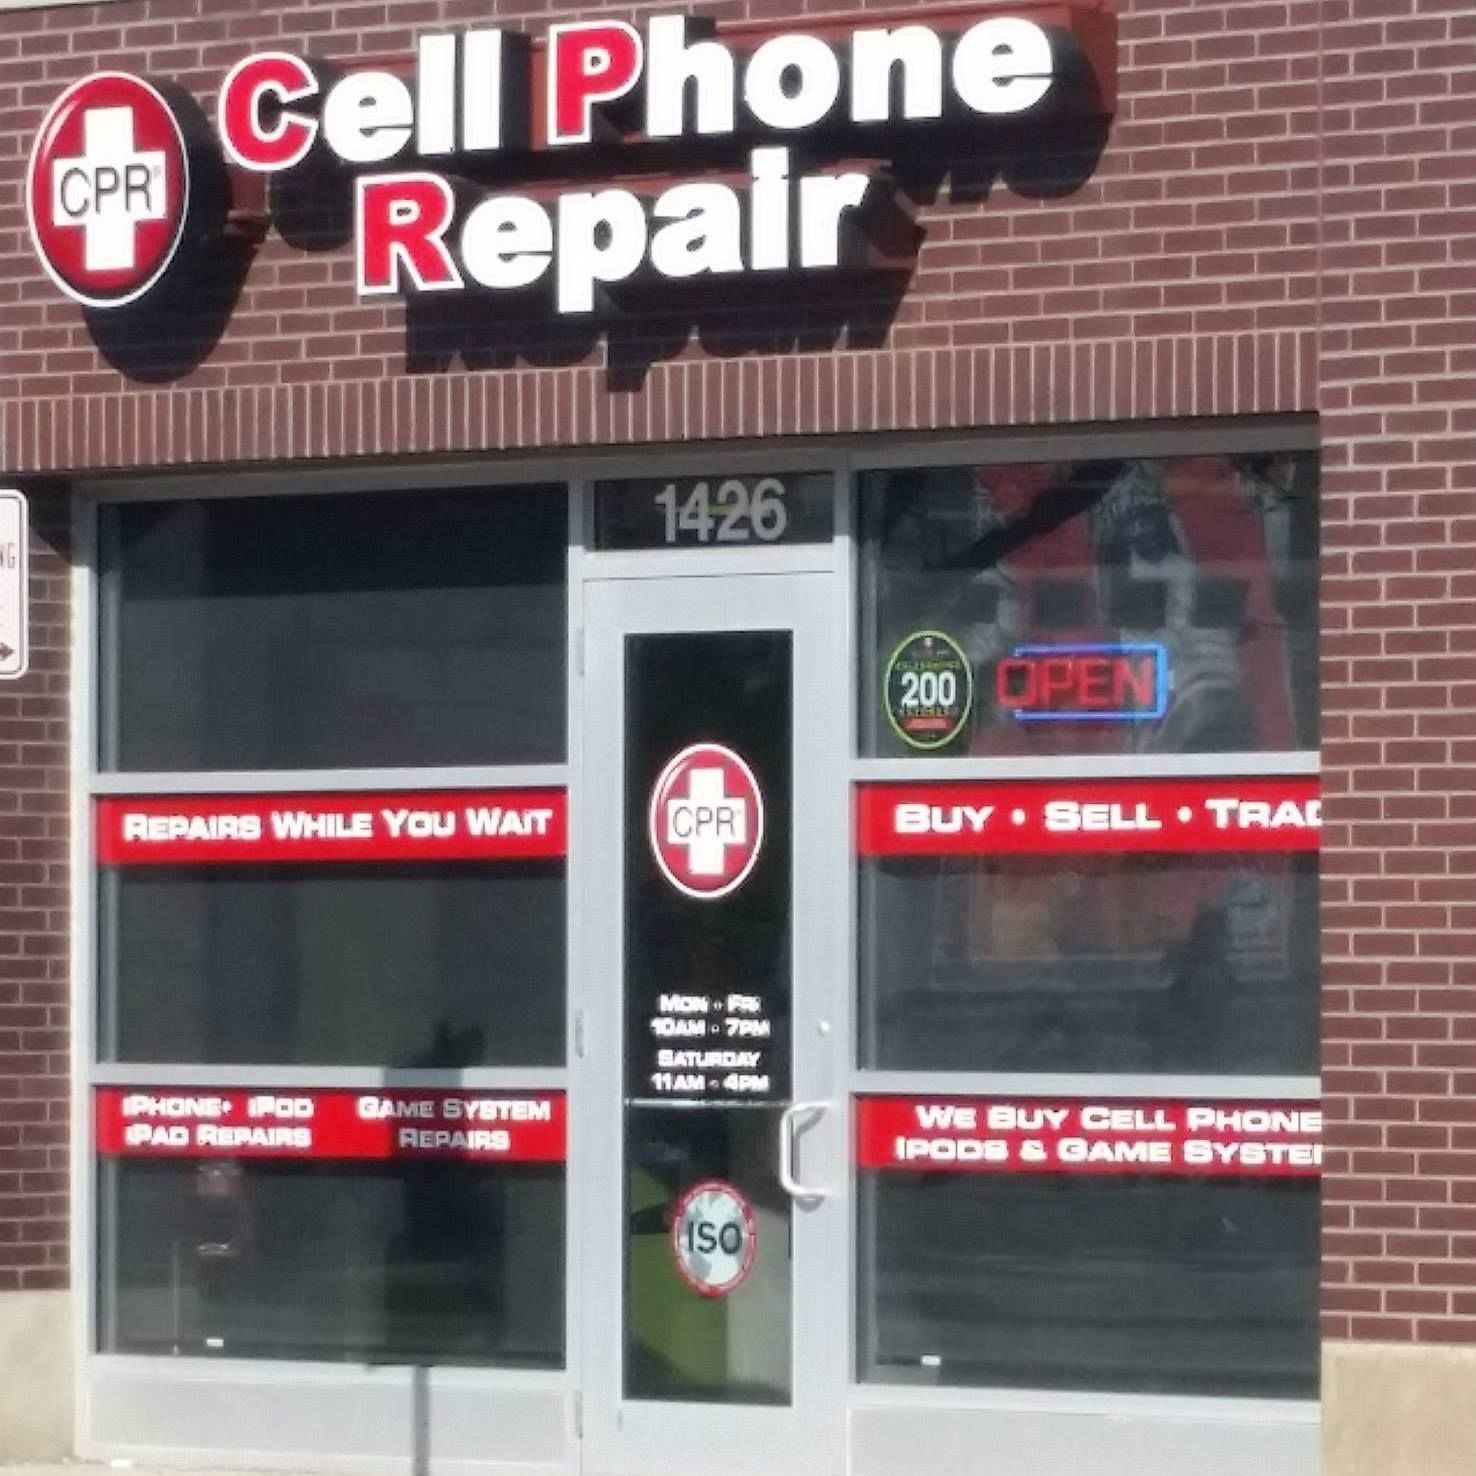 CPR Cell Phone Repair Columbus, OH | Visit CPR Columbus for quick